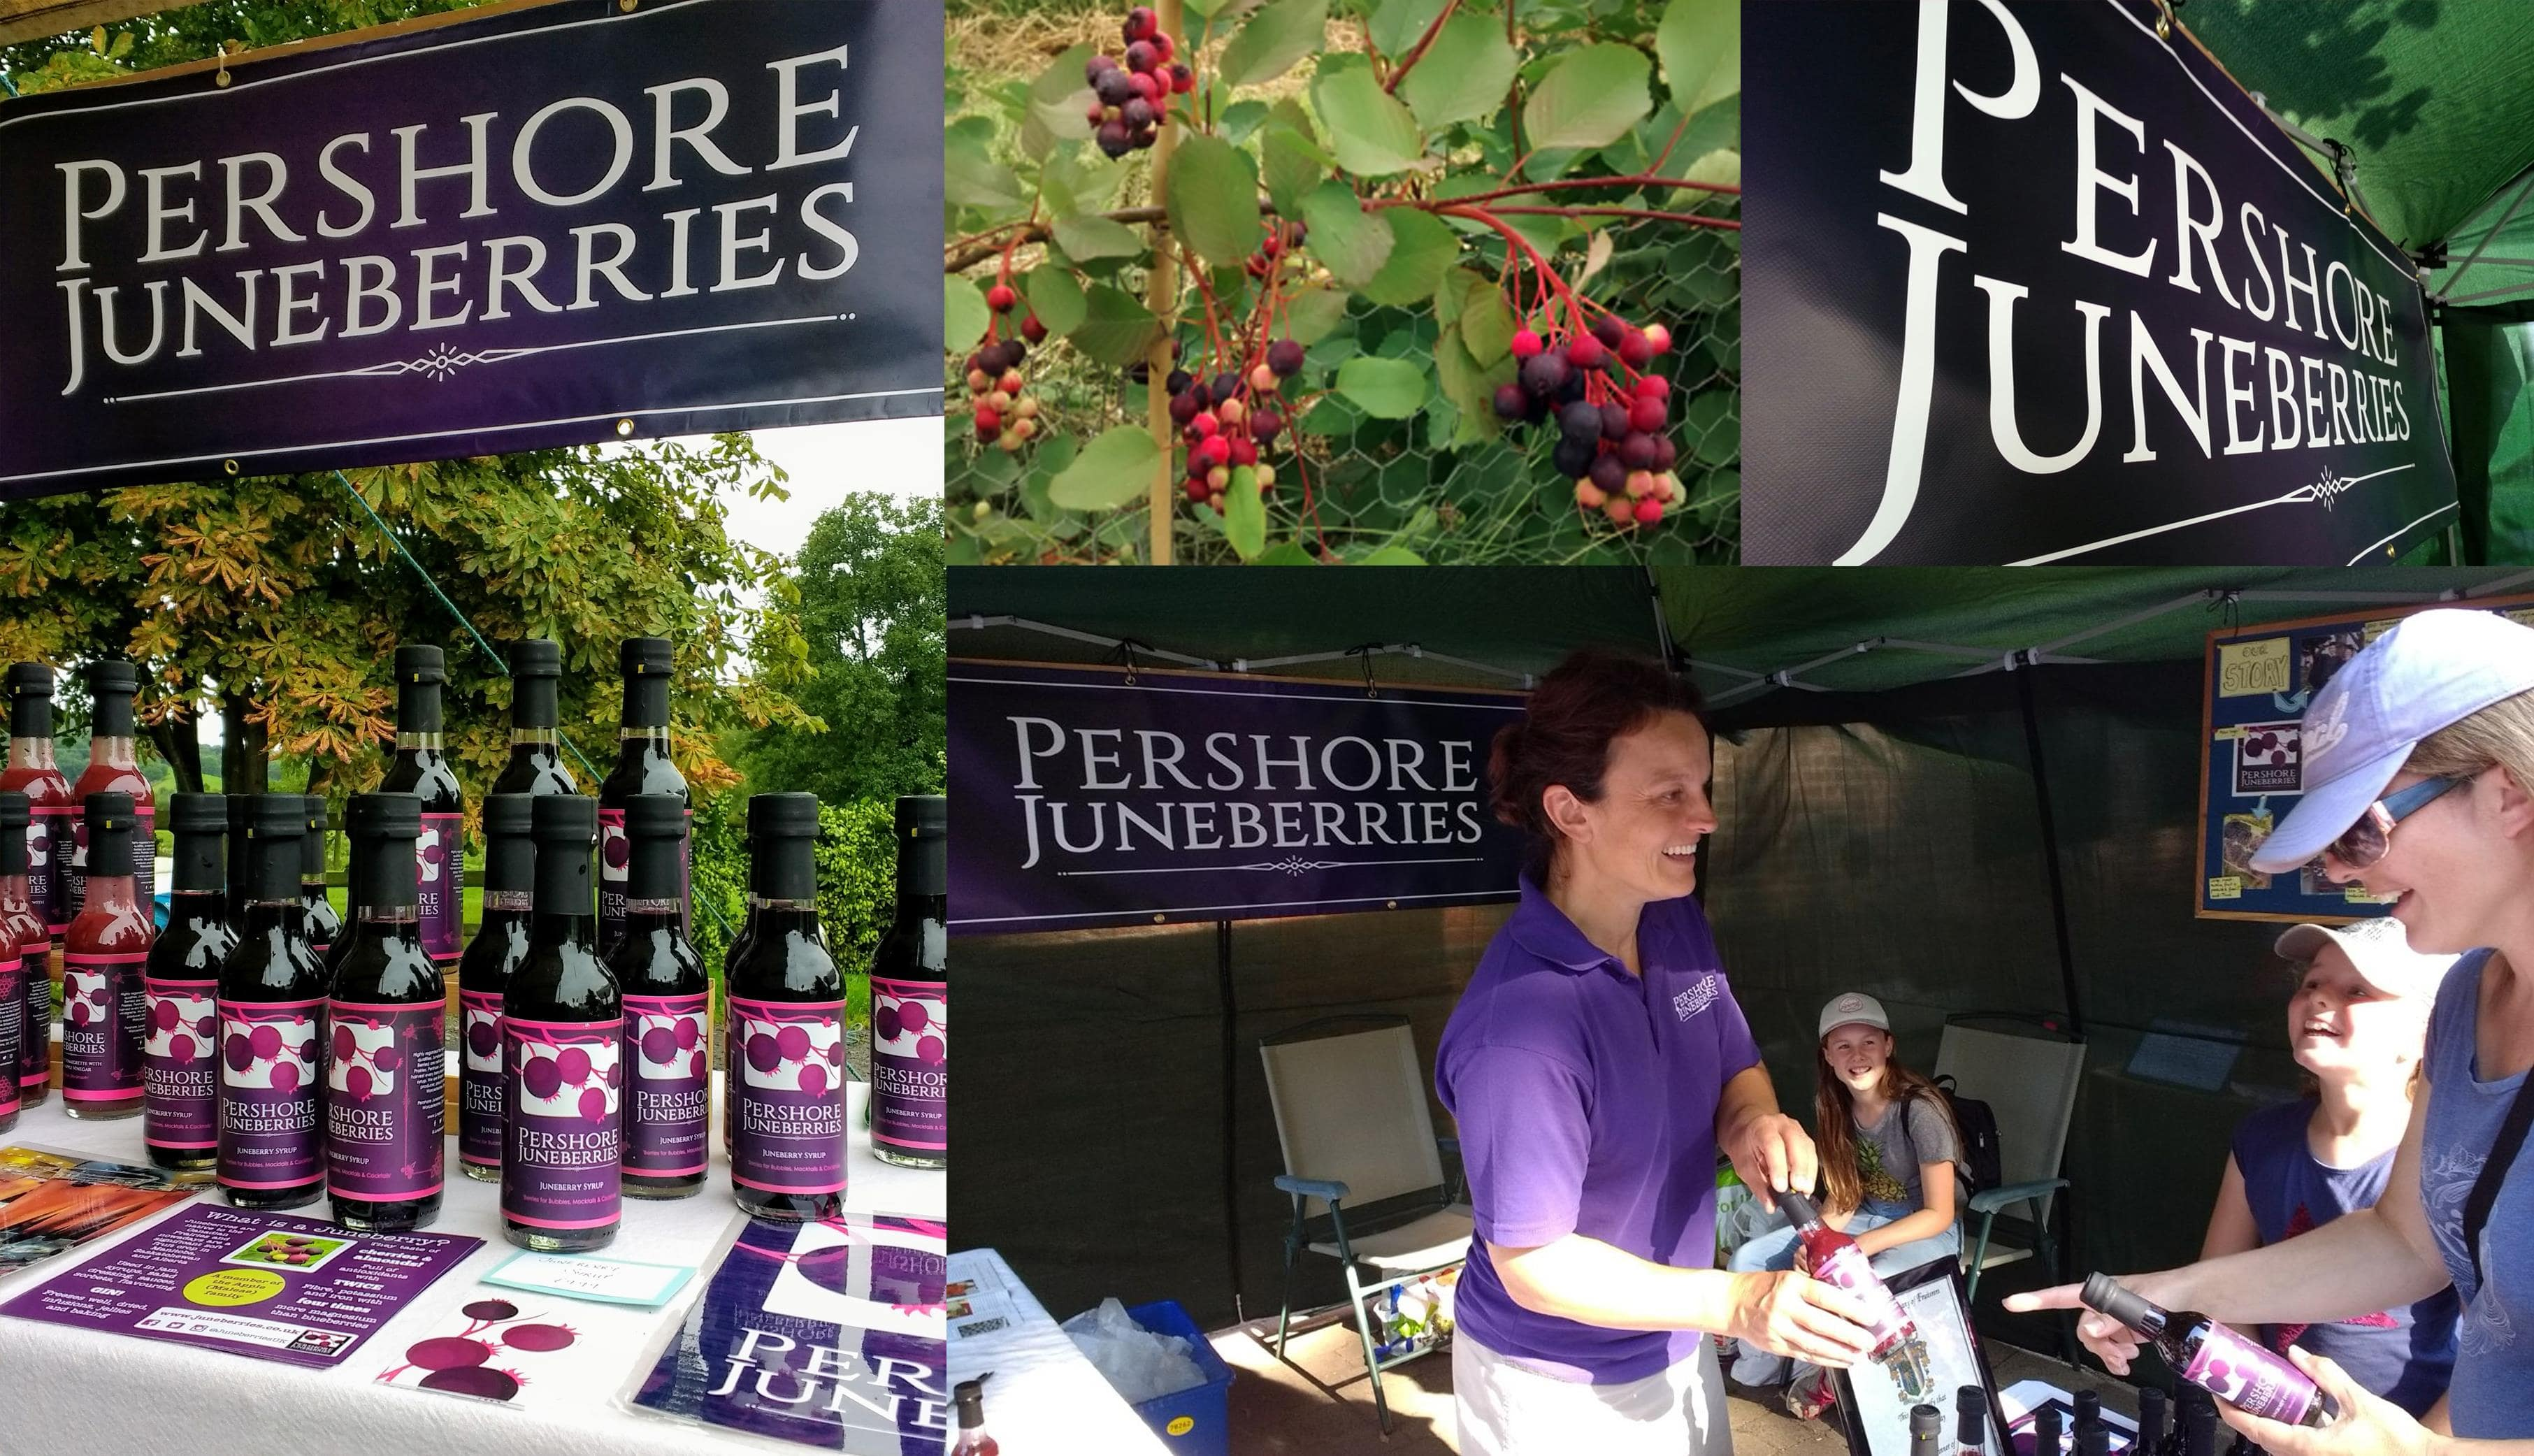 Pershore Juneberries - Eyelet Banner - Multiple Graphic Design